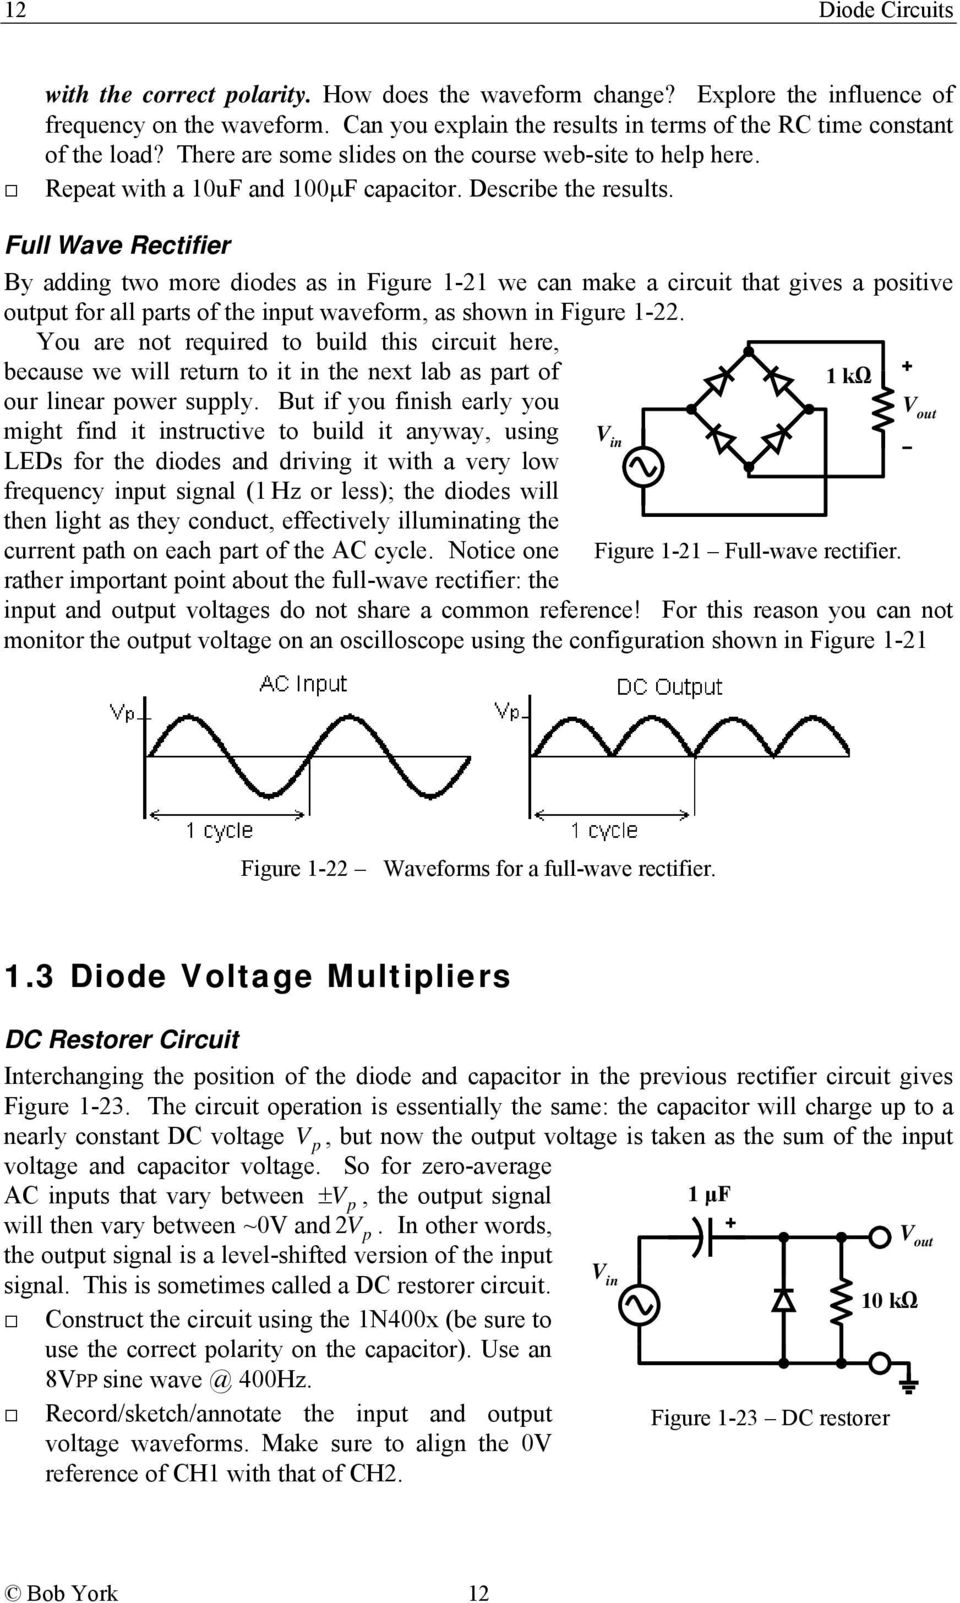 Diode Circuits Lab 1 Overview Table Of Contents Ece 2b Pdf Circuit In Addition Led Light Emitting Further Rectifier Full Wave By Adding Two More Diodes As Figure 21 We Can